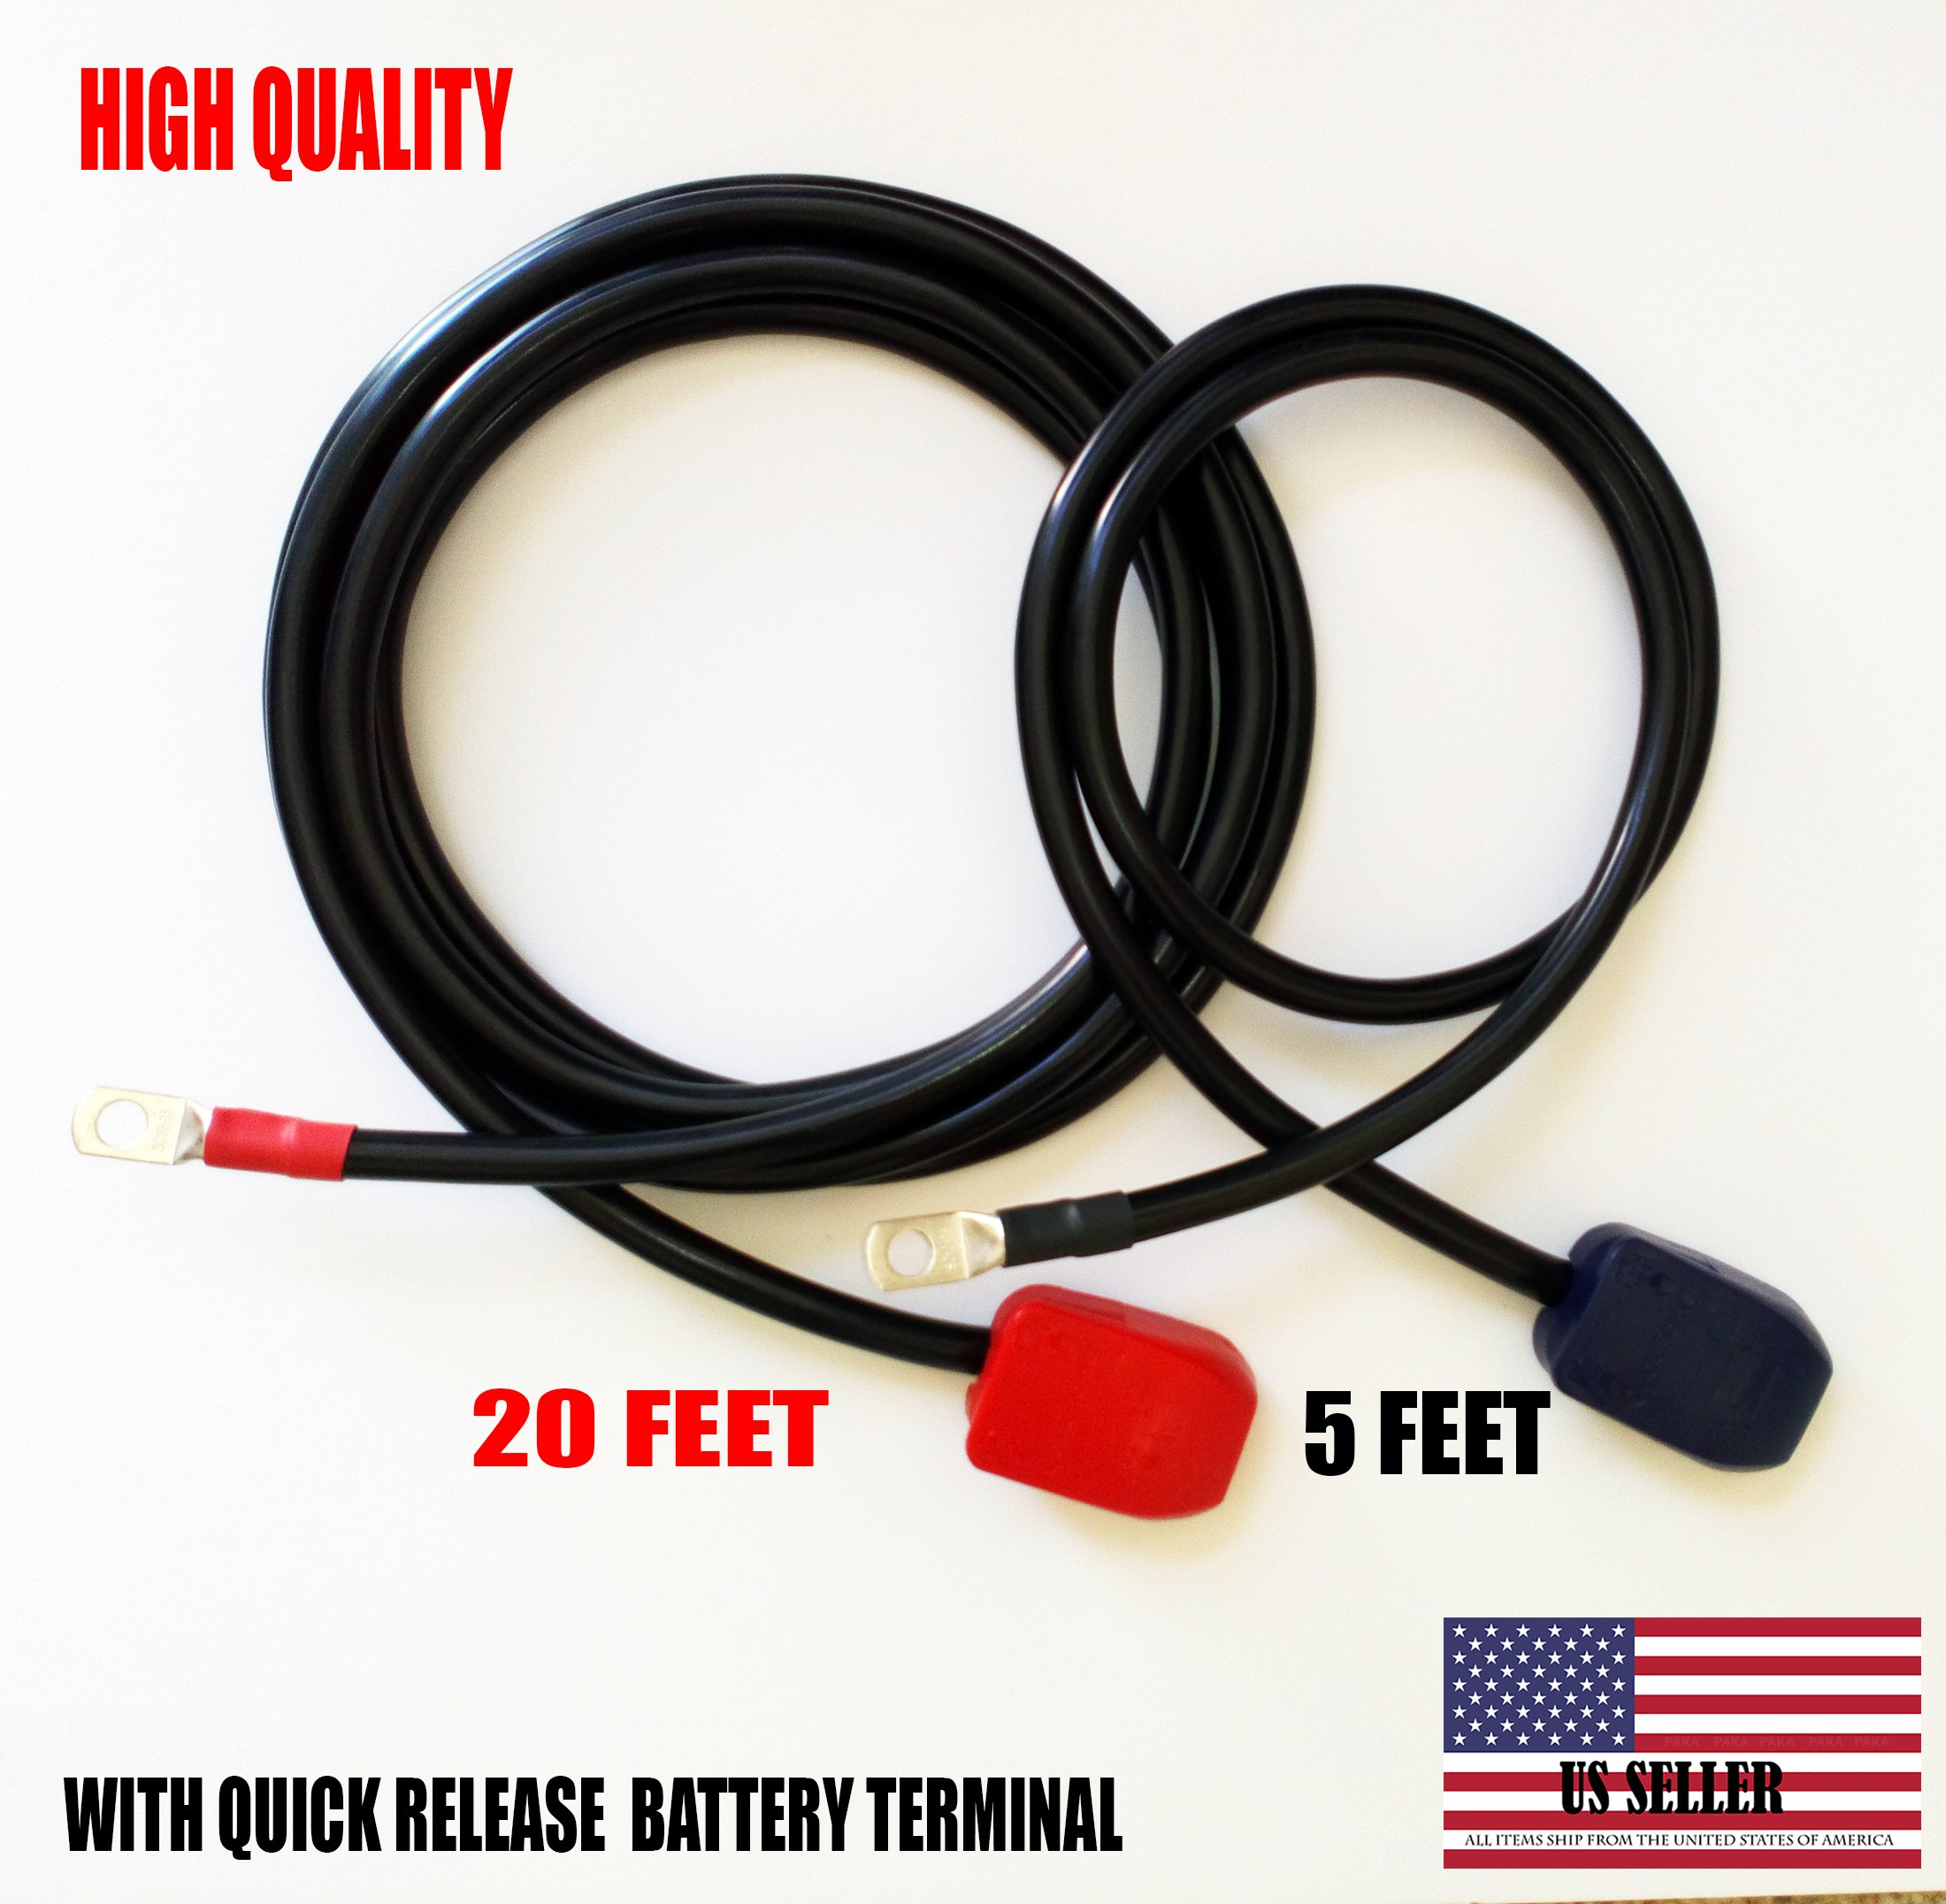 Battery Relocation Kit, 2 AWG Cable, Top Post 20 FT (+) / 5 FT(-) by Paka Hand Tools